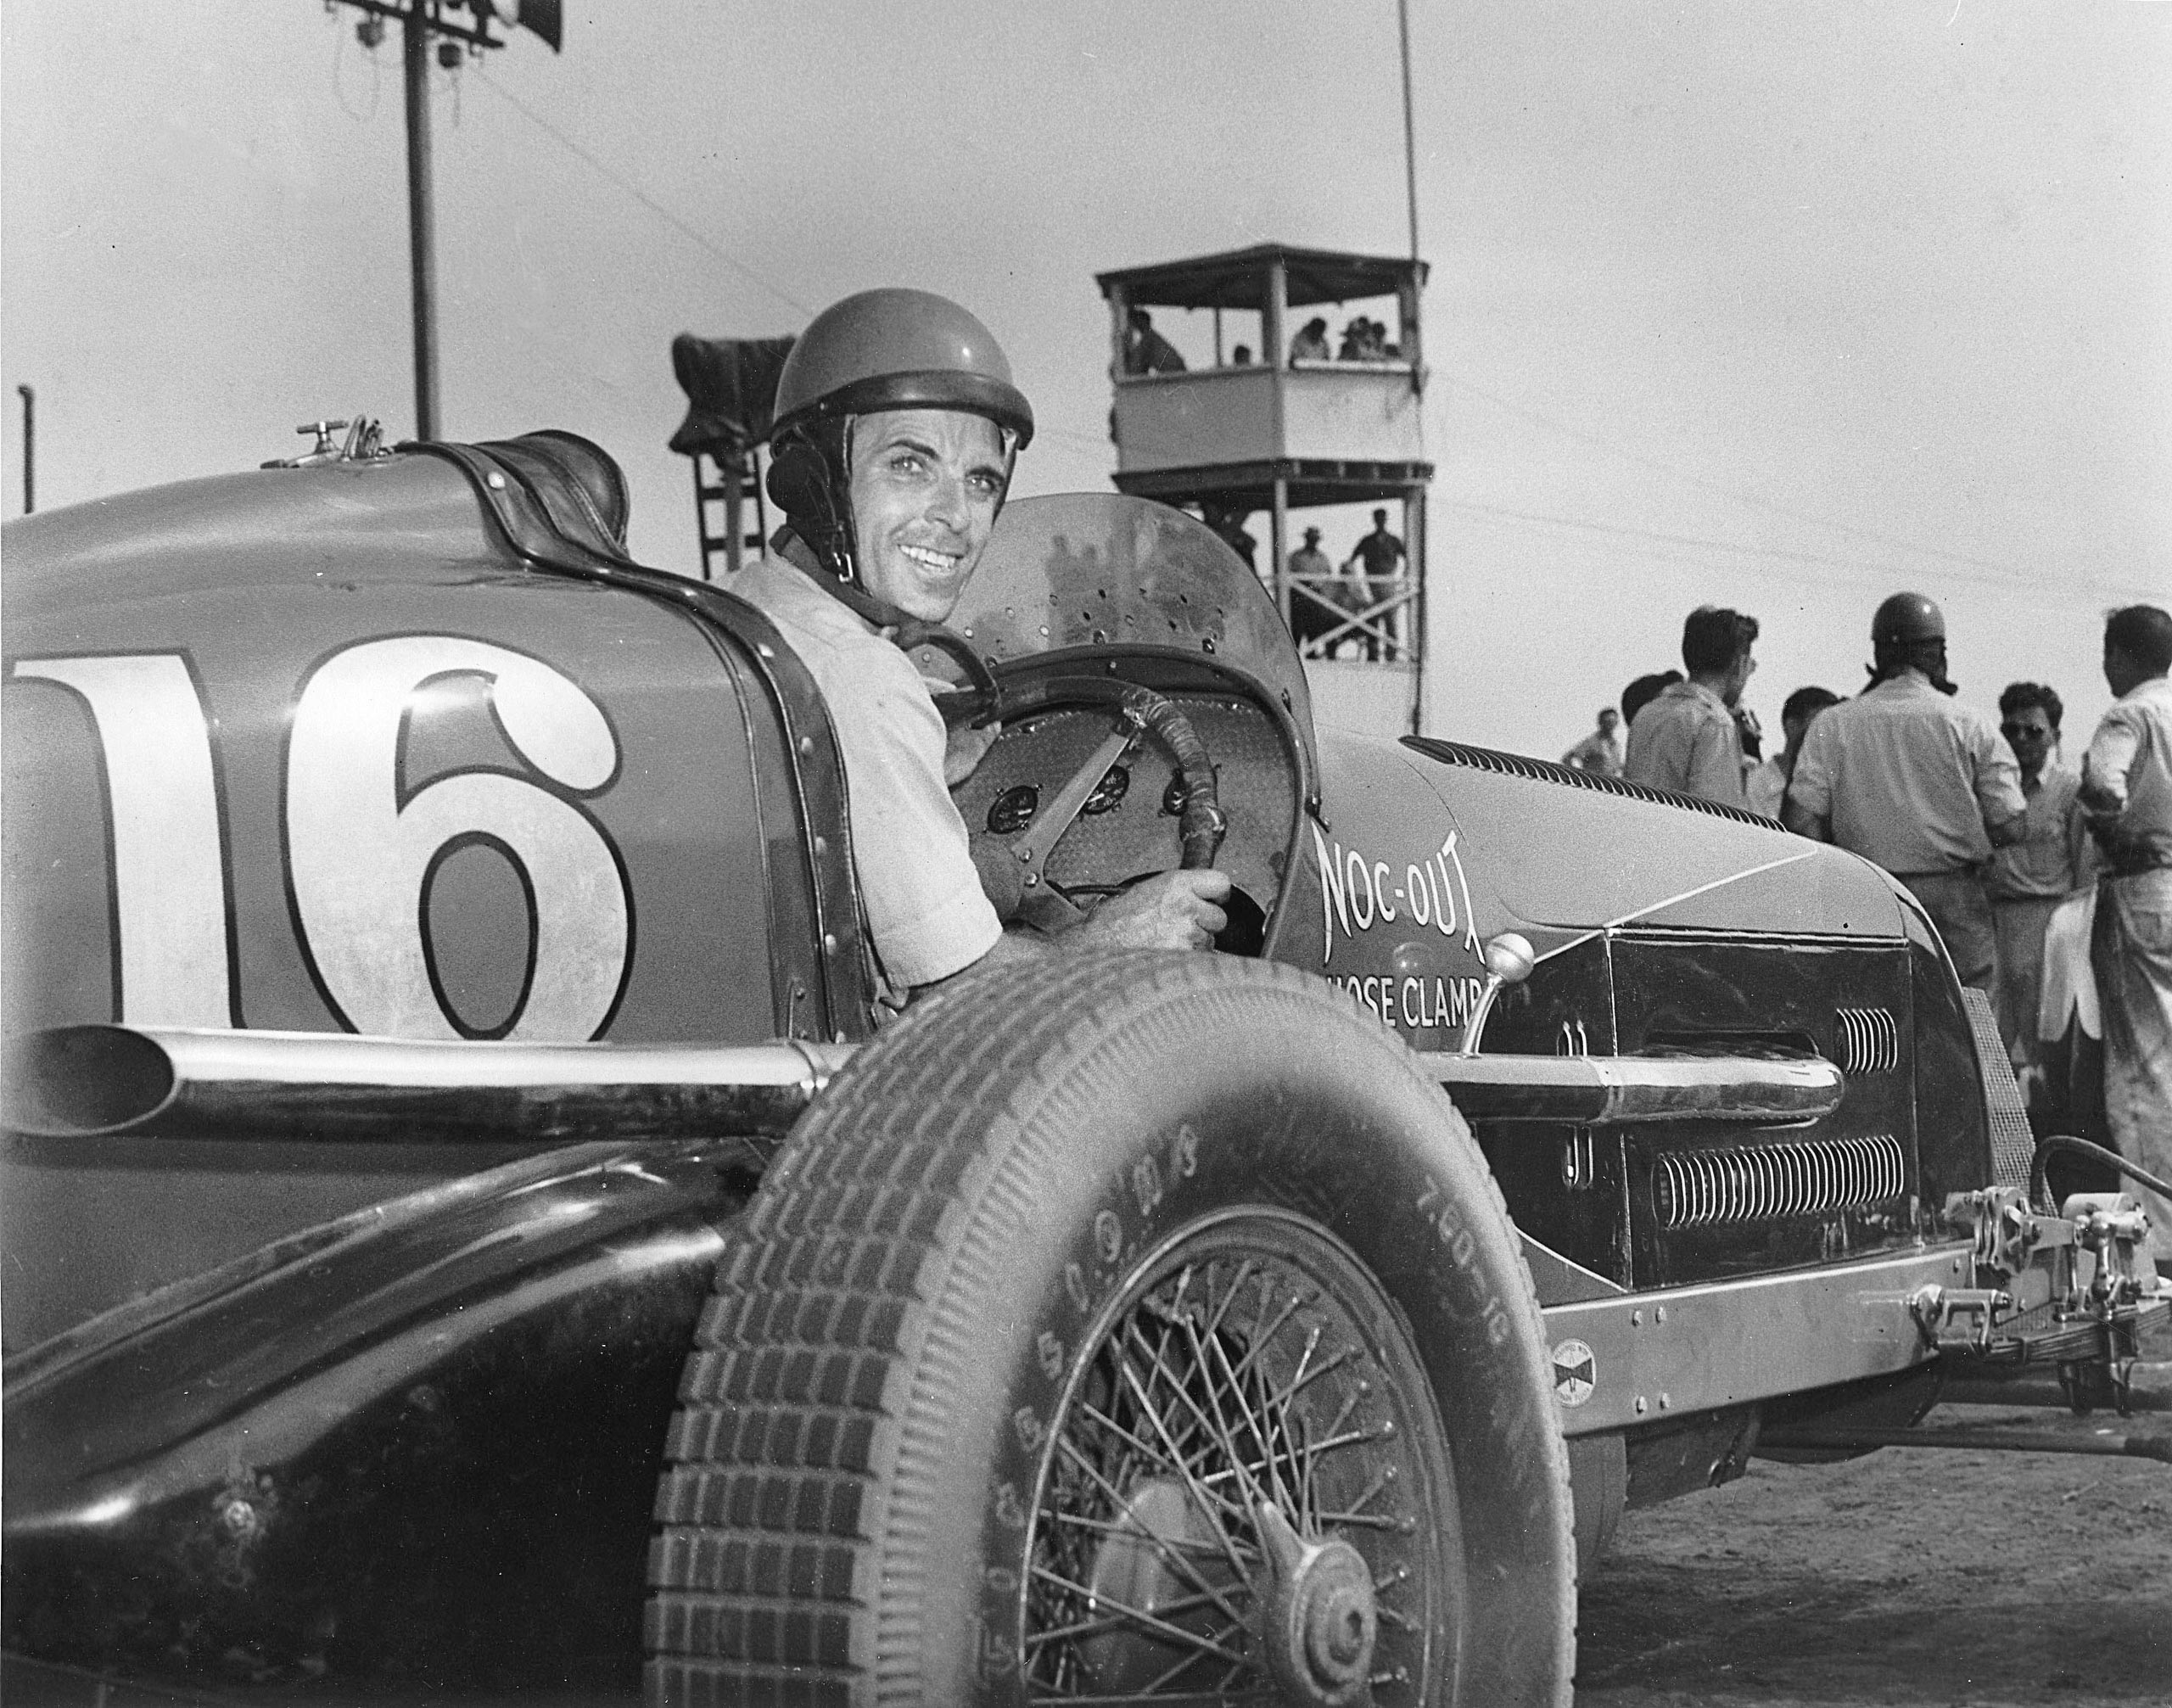 1946: George Robson drove Joel Thorne's Noc-Out Hose Clamp Special to victory in the Indianapolis 500 AAA Indy Car race at the Indianapolis Motor Speedway.